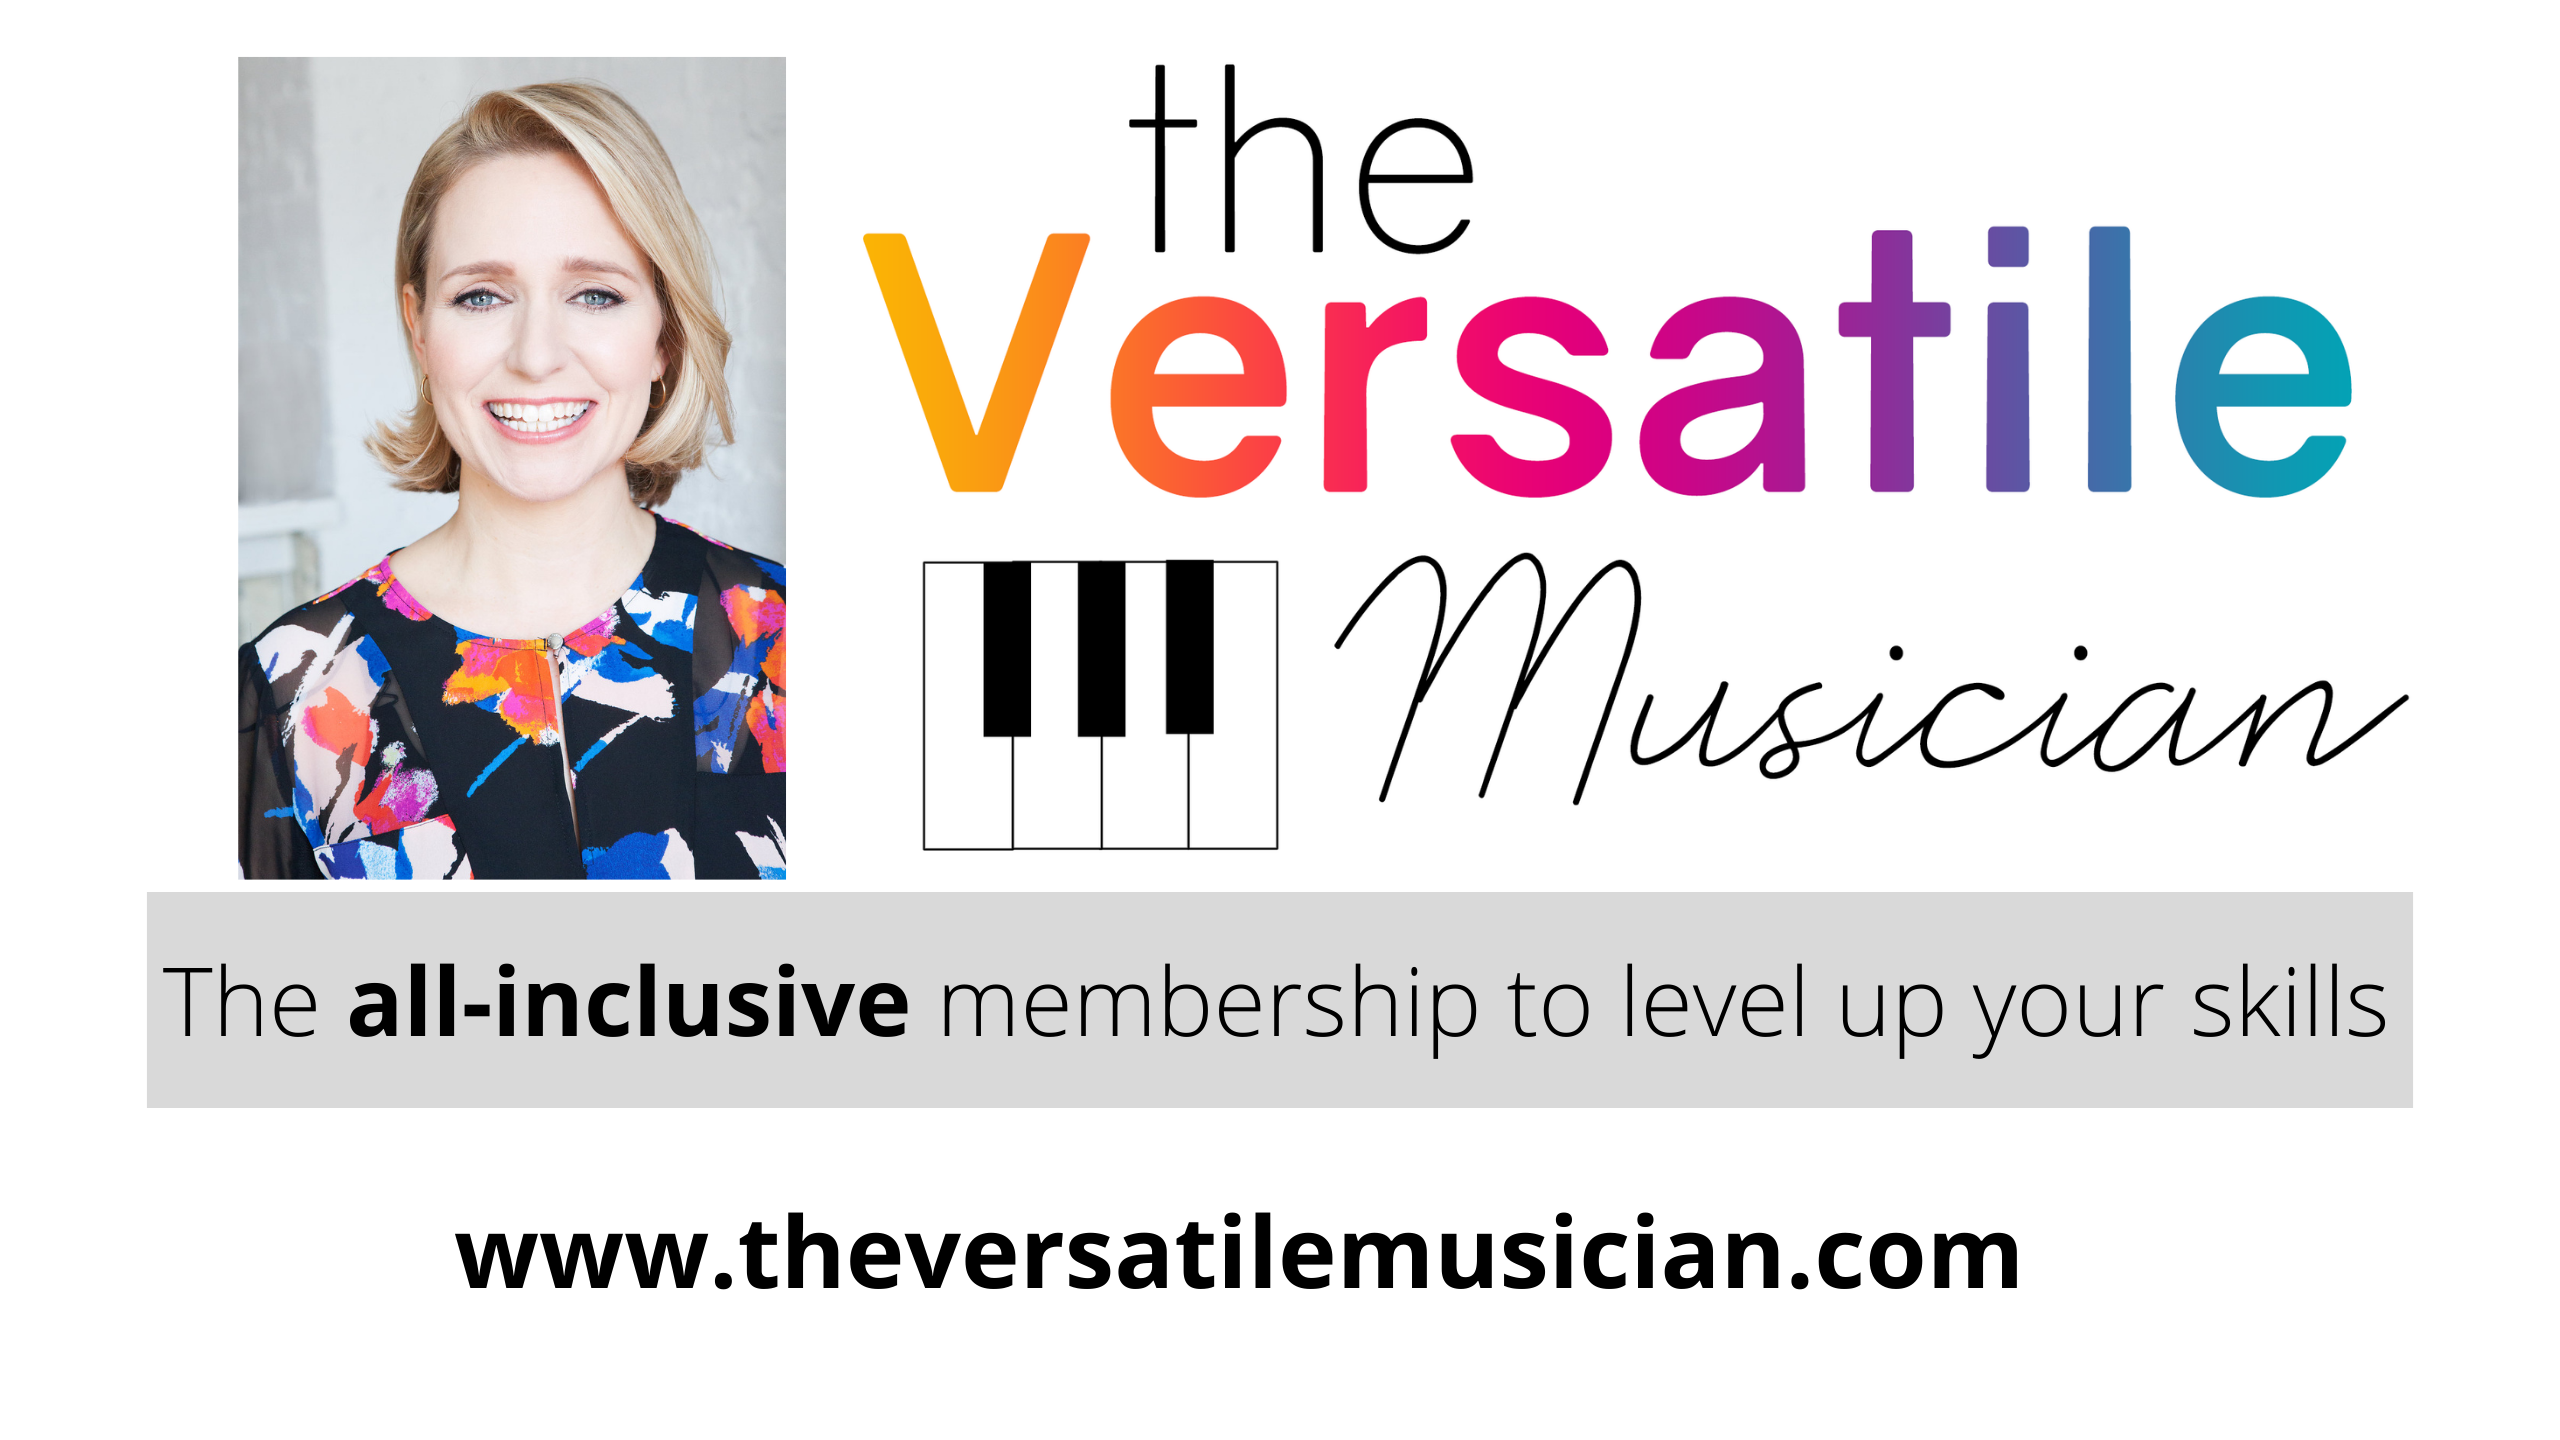 Owner of the versatile musician teaching online music lessons